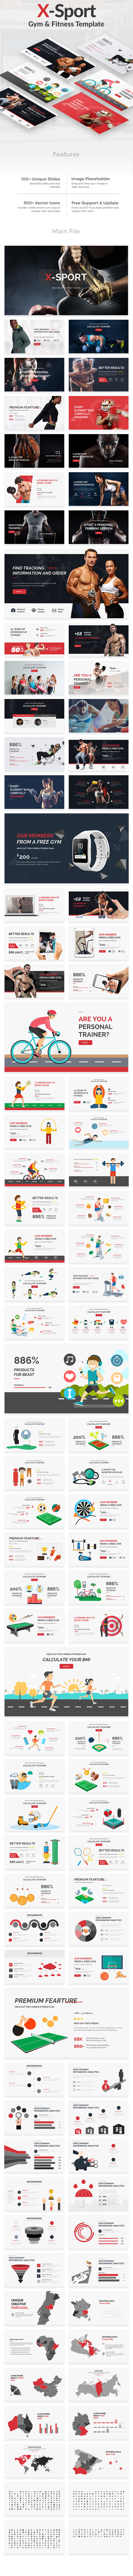 X Sport Gym and Fitness Keynote Template - Creative Keynote Templates